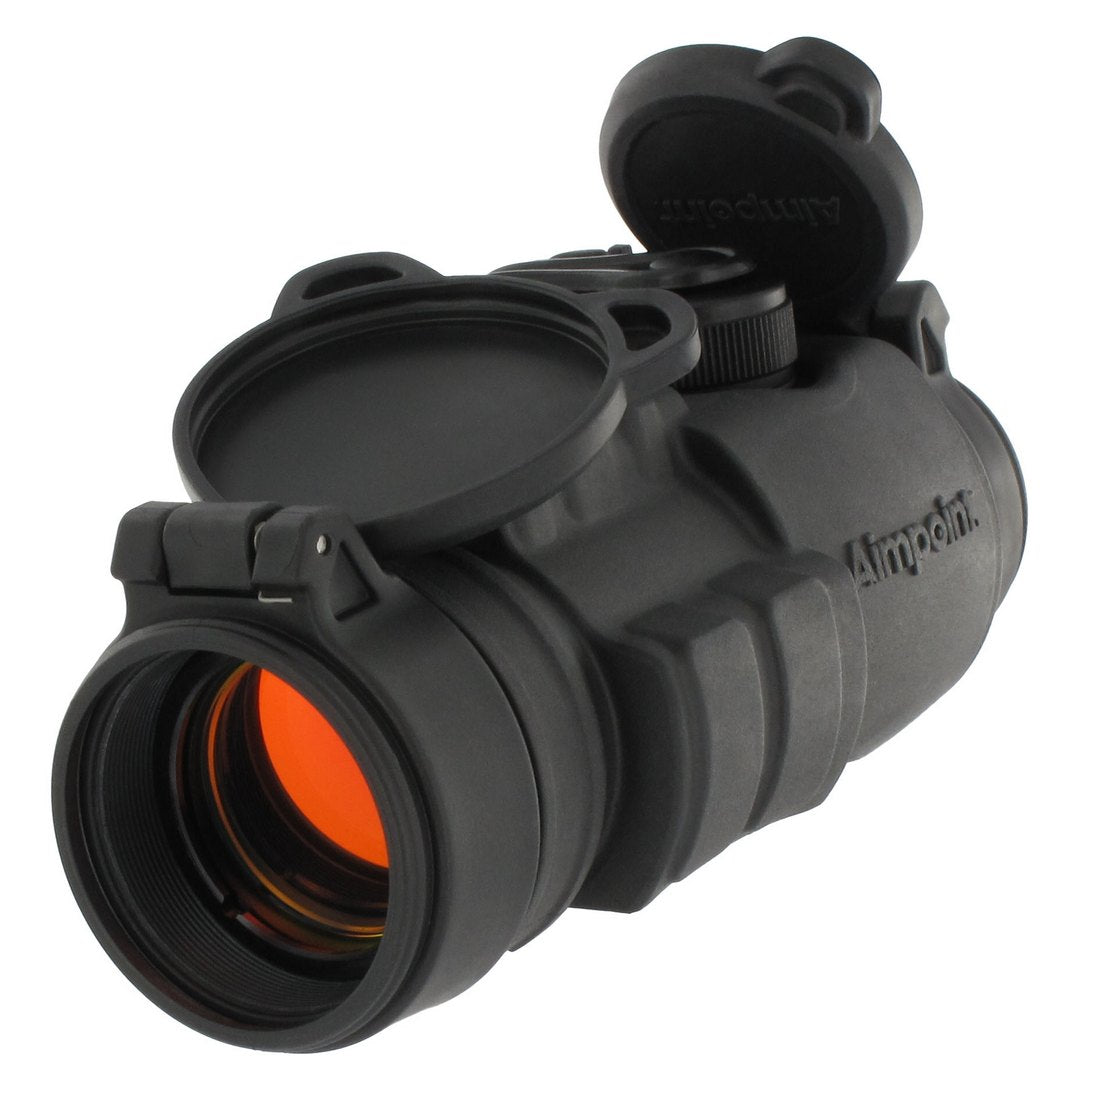 Aimpoint 11408 COMPM3 Sight - Security Pro USA